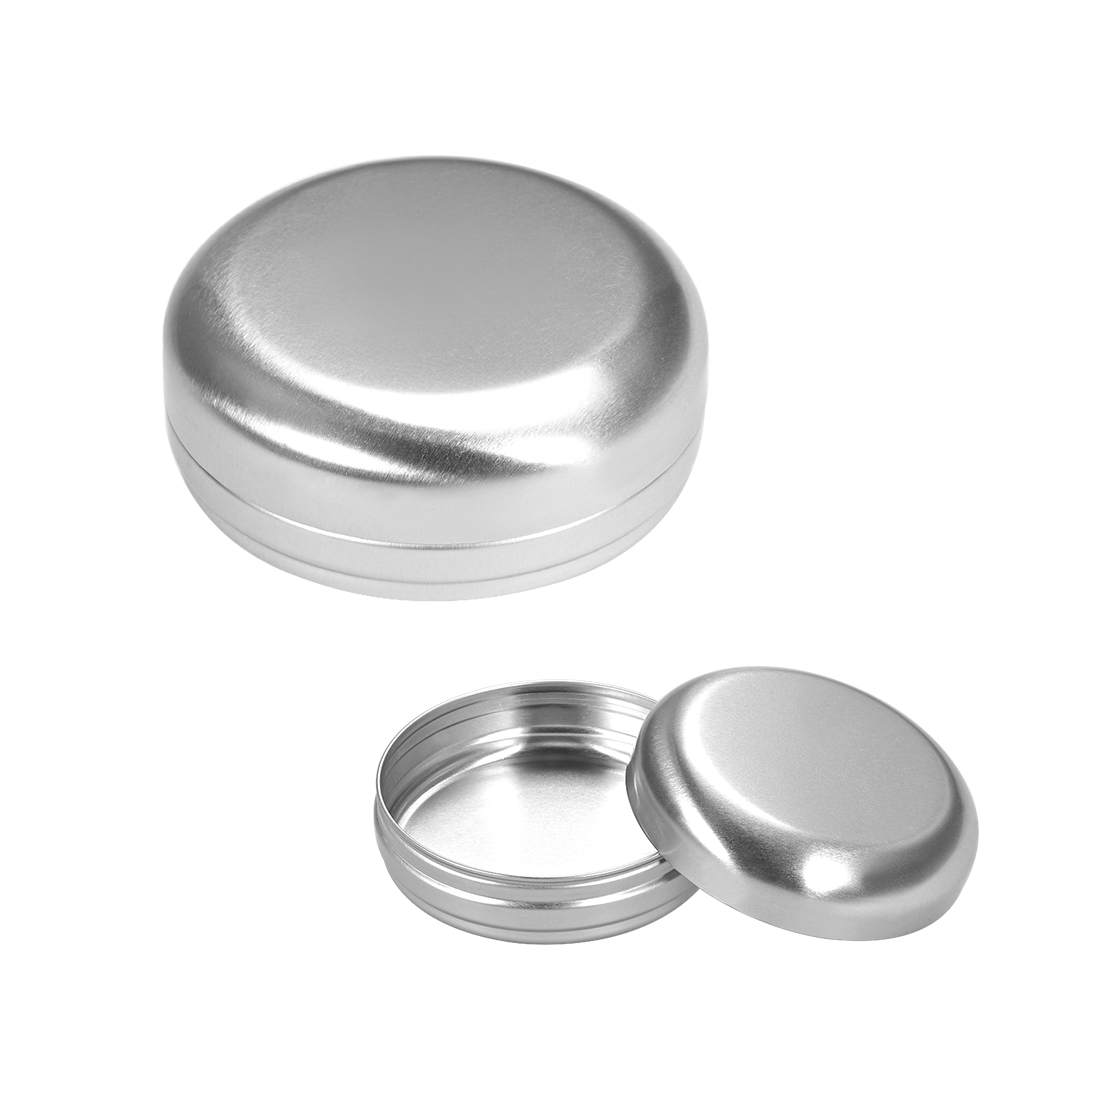 3.4 oz Round Aluminum Cans Tin Screw Top Metal Lid Containers 100ml 1pcs